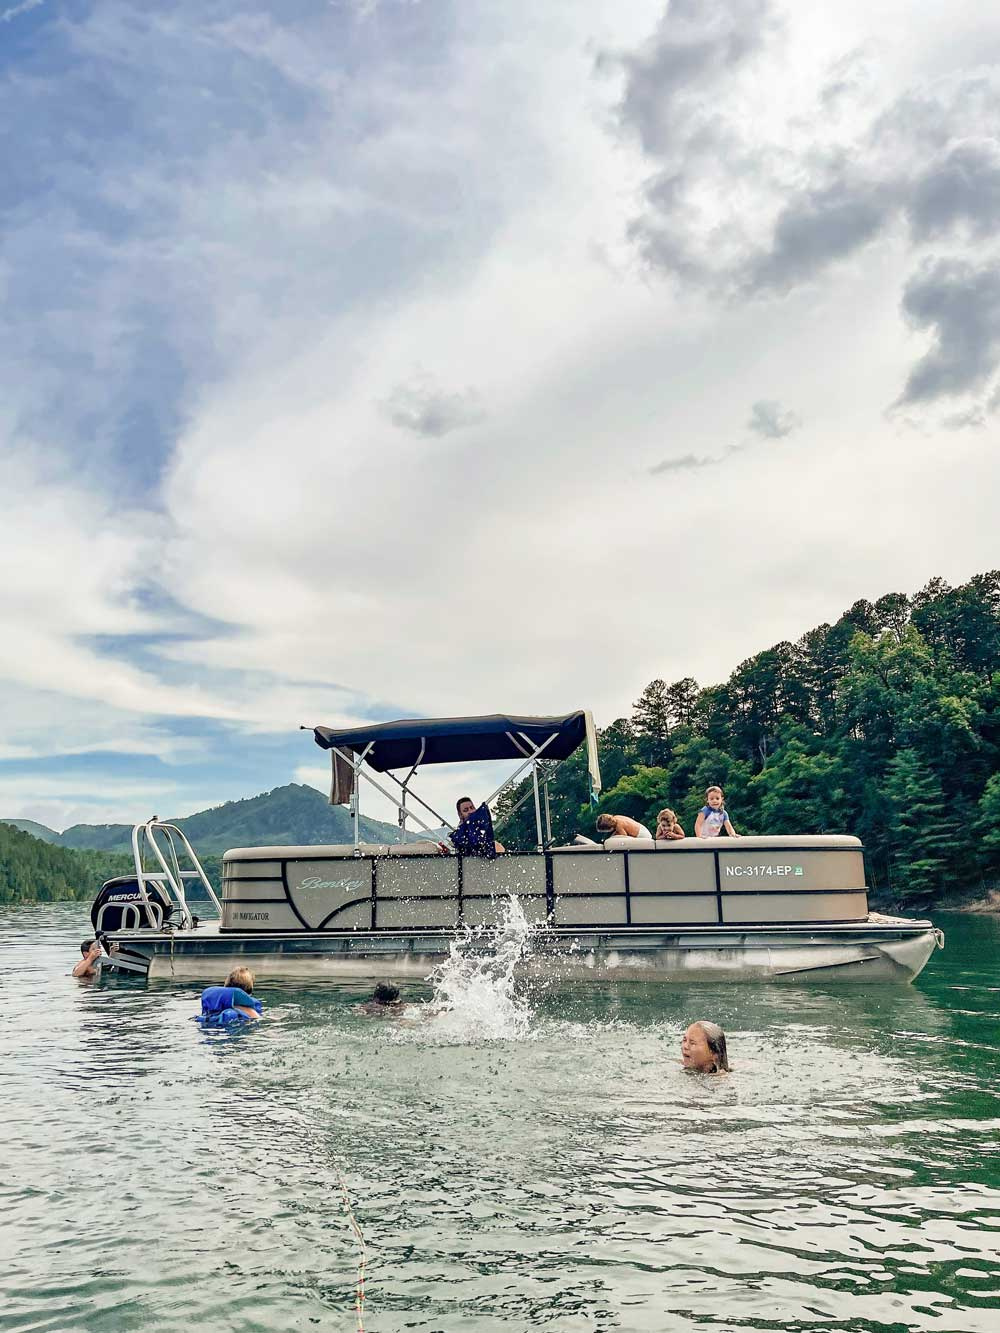 Best Things to Do in Bryson City NC with Kids - Boating on Lake Fontana   Things to do in Bryson City NC by popular Florida travel blog, Fresh Mommy Blog: image of family boating on Lake Fontana.